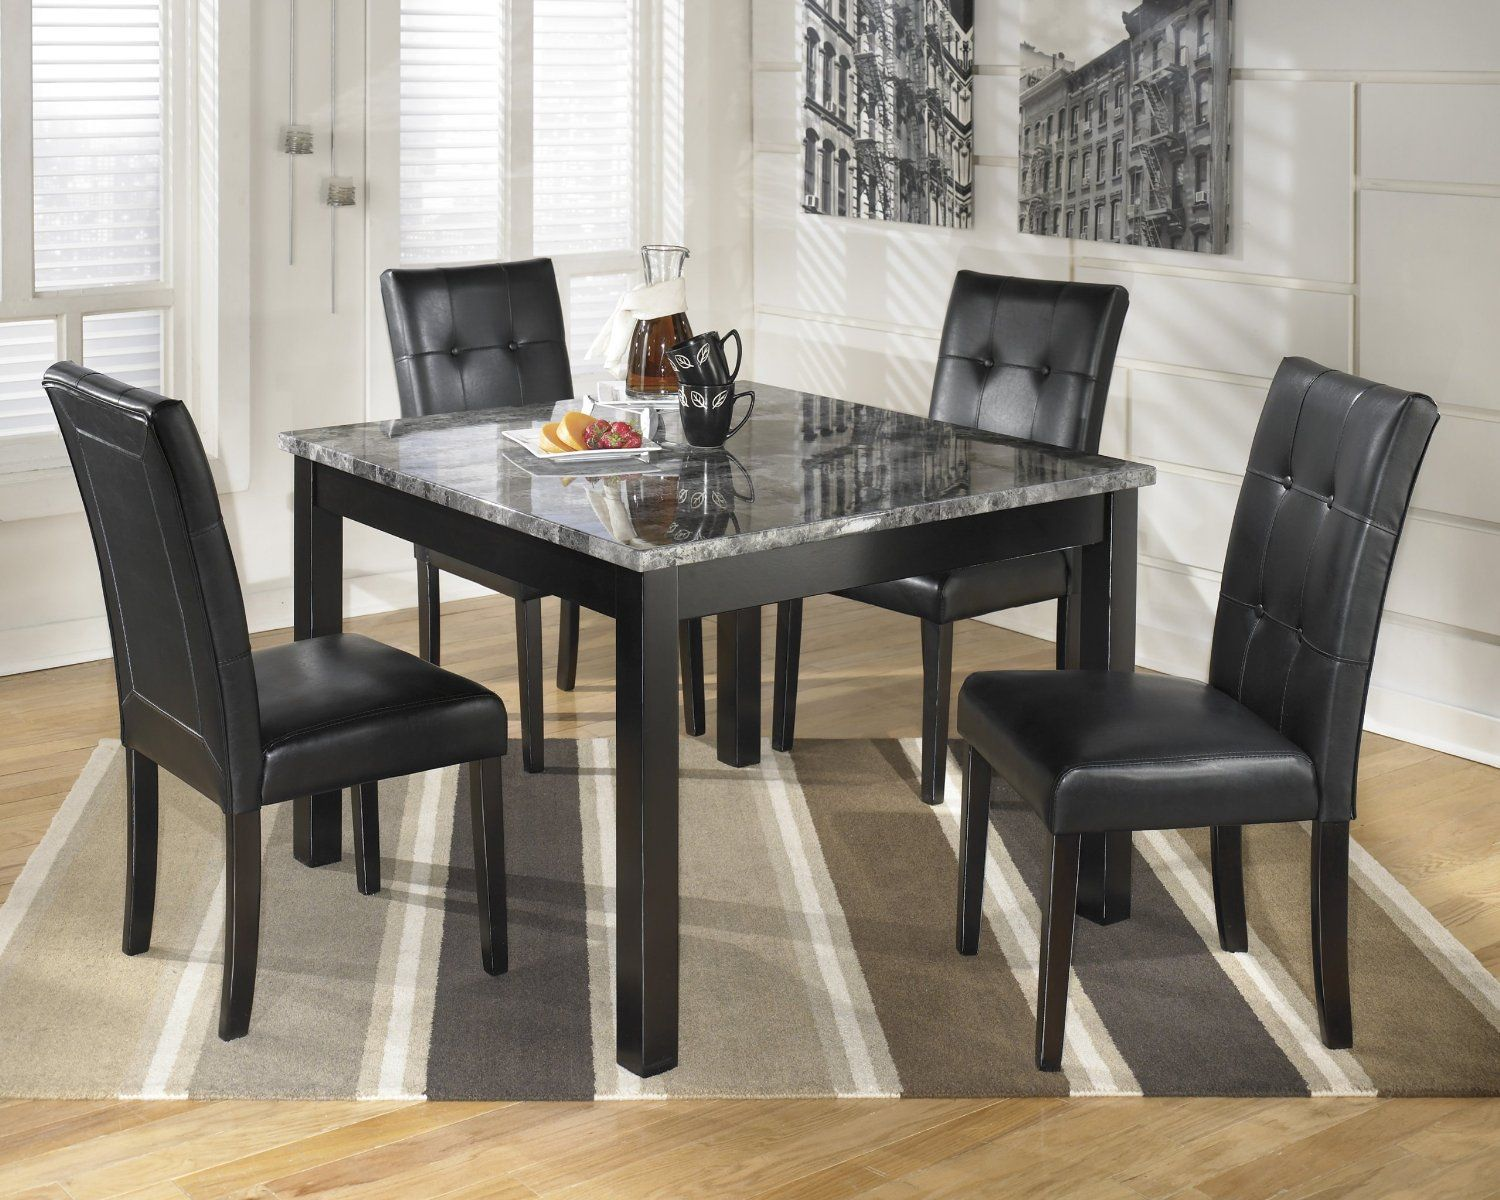 Granite Dining Table Contemporary Http Makerland Org Choosing